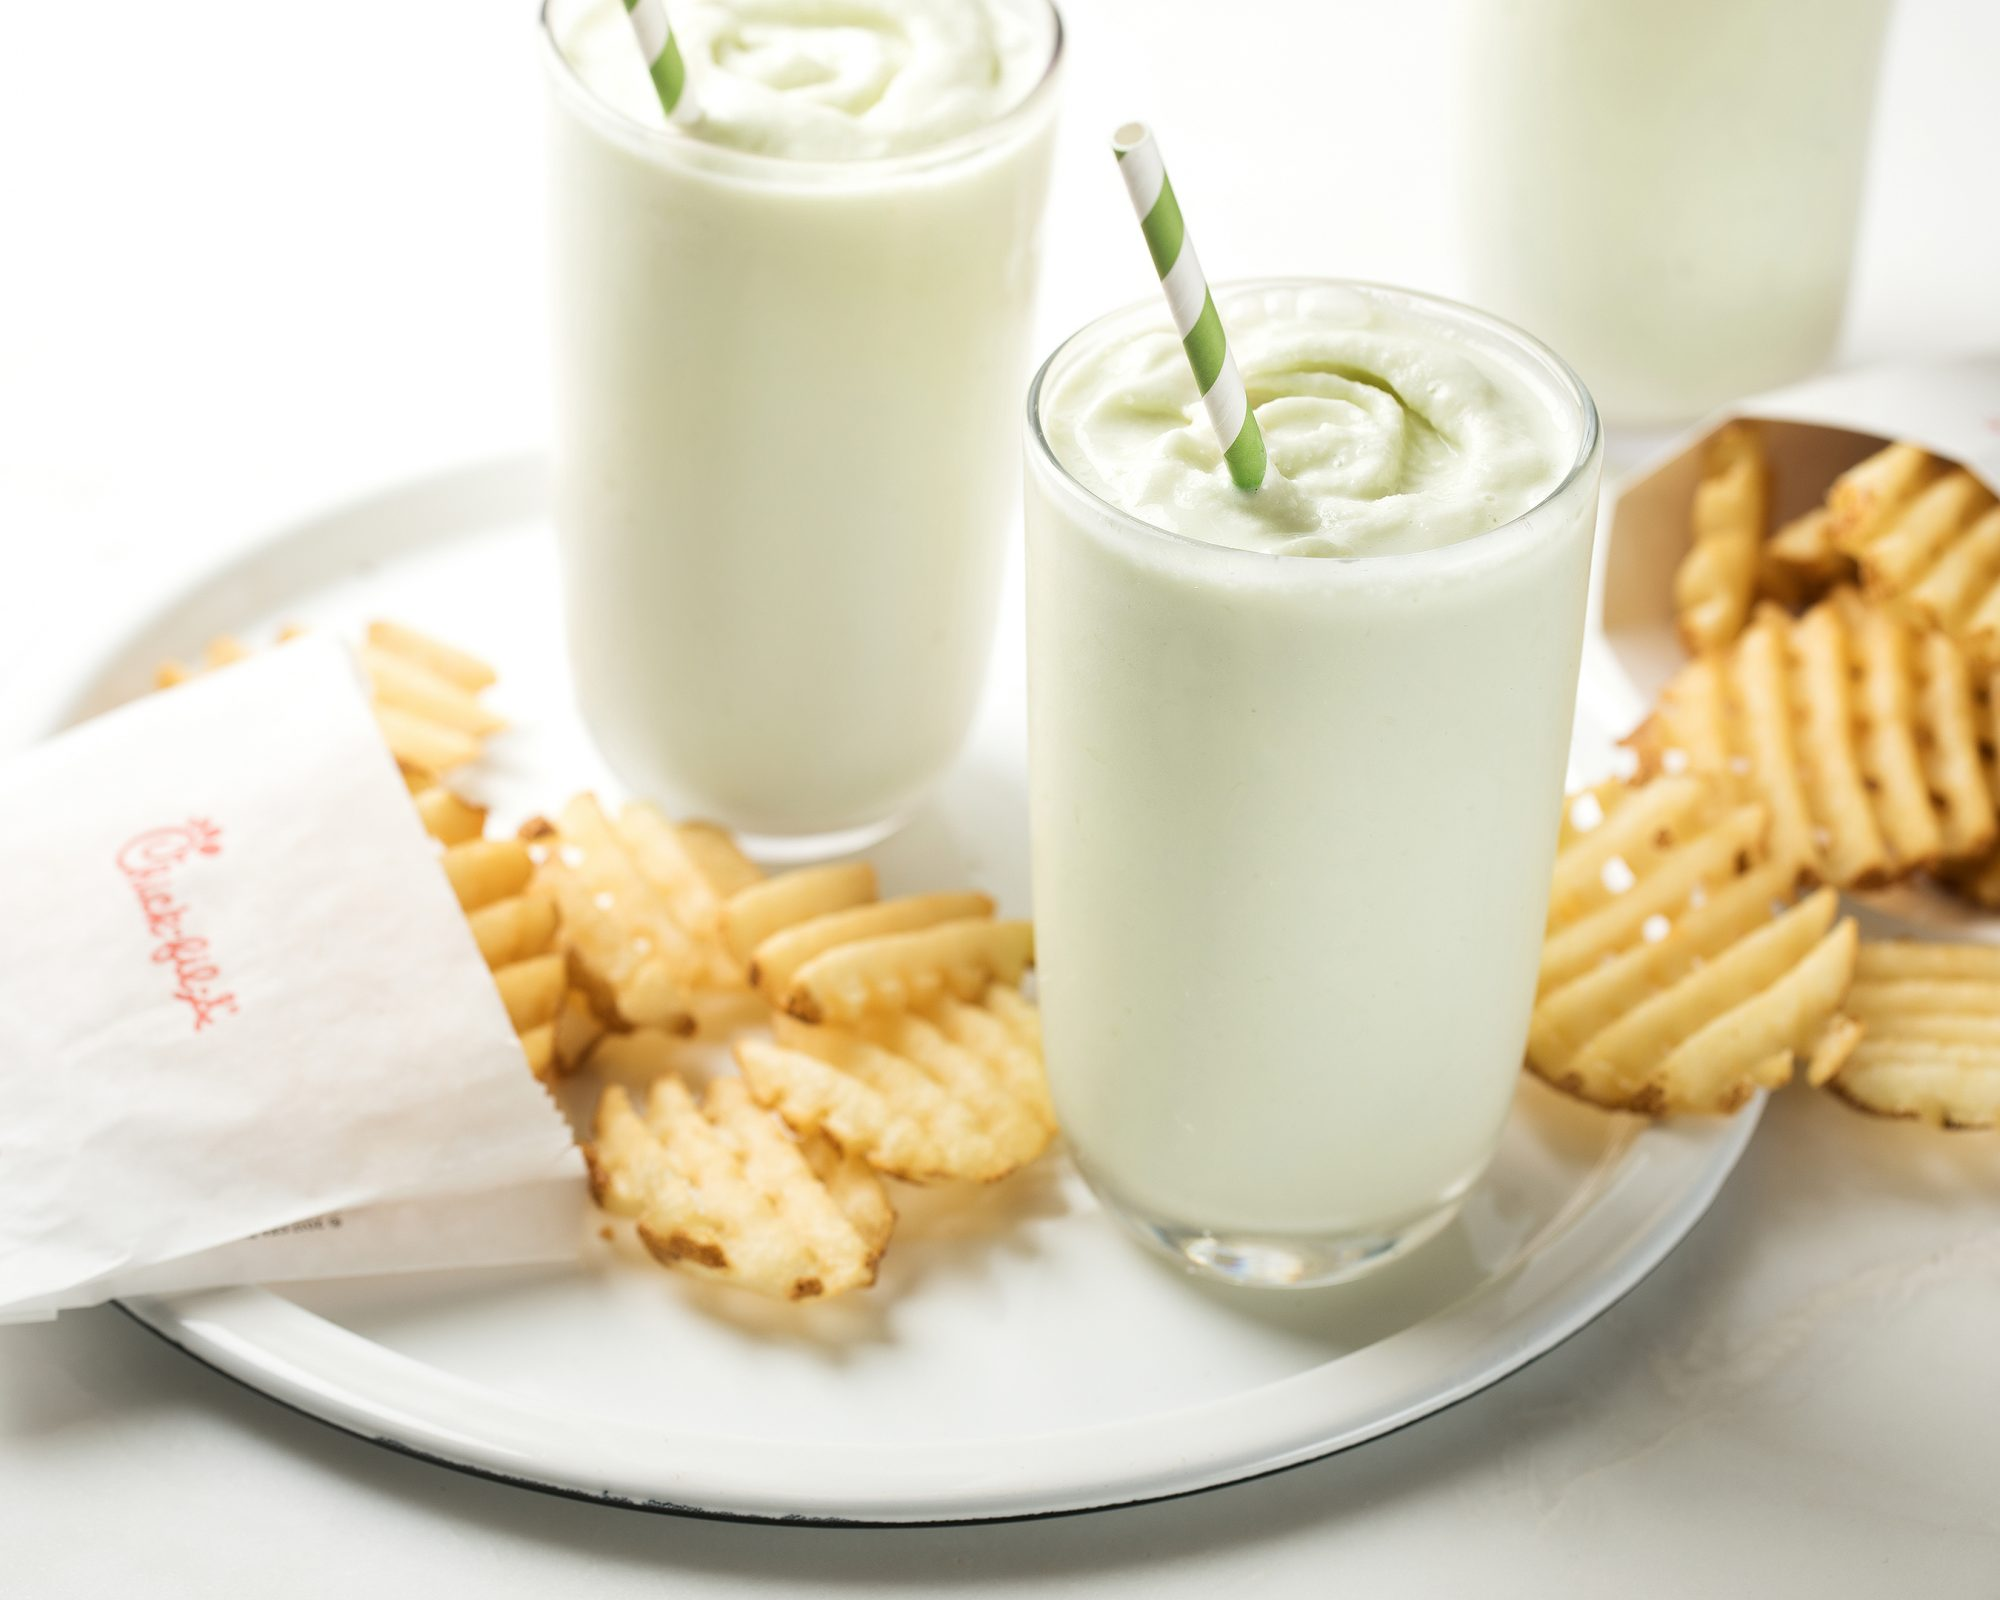 Chick-fil-A Unveils a Frosted Key Lime Drink That's 'Lighter Than a Milkshake'